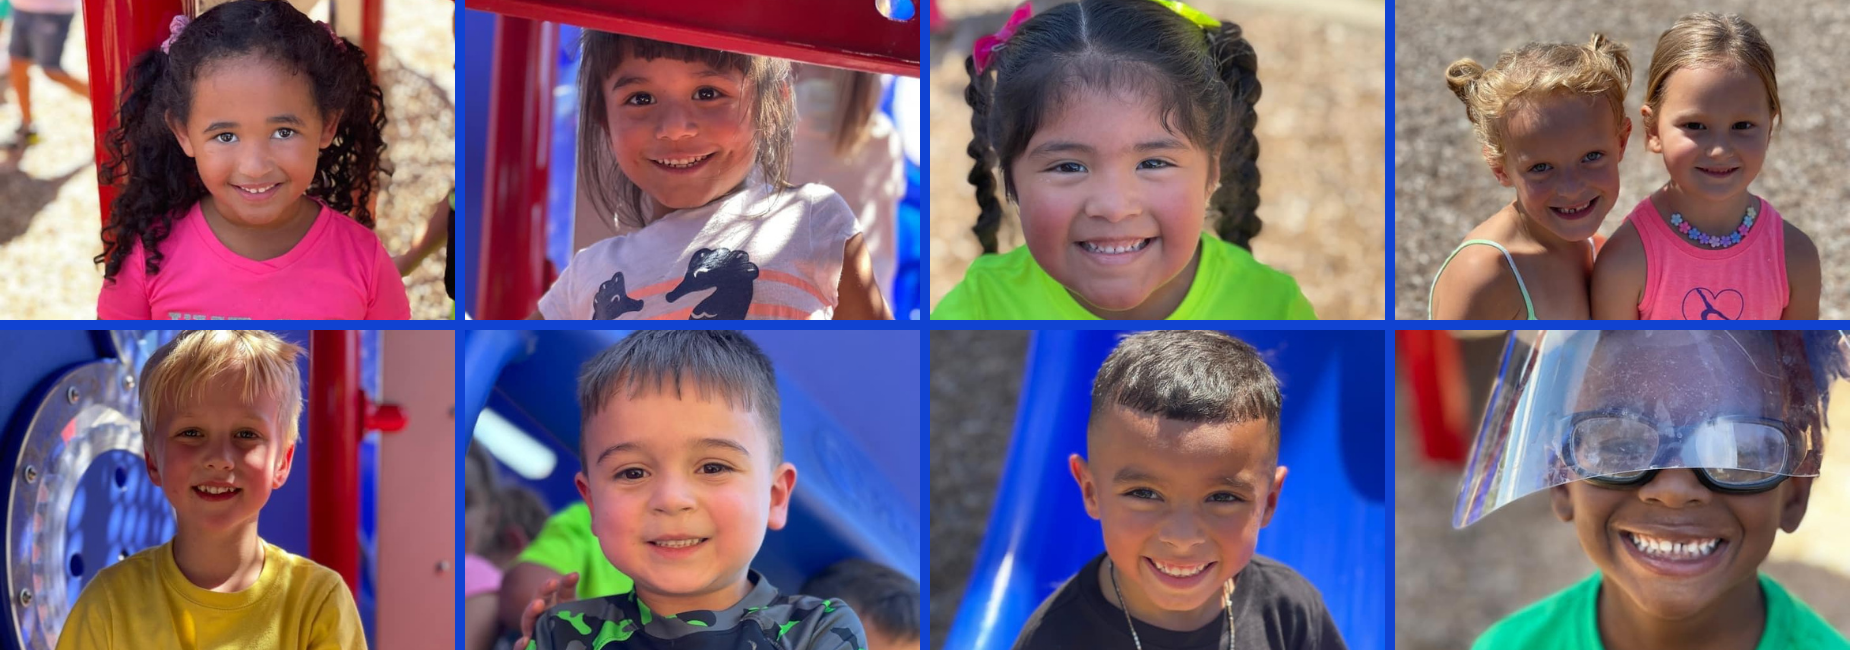 collage of young kiddos on the playground